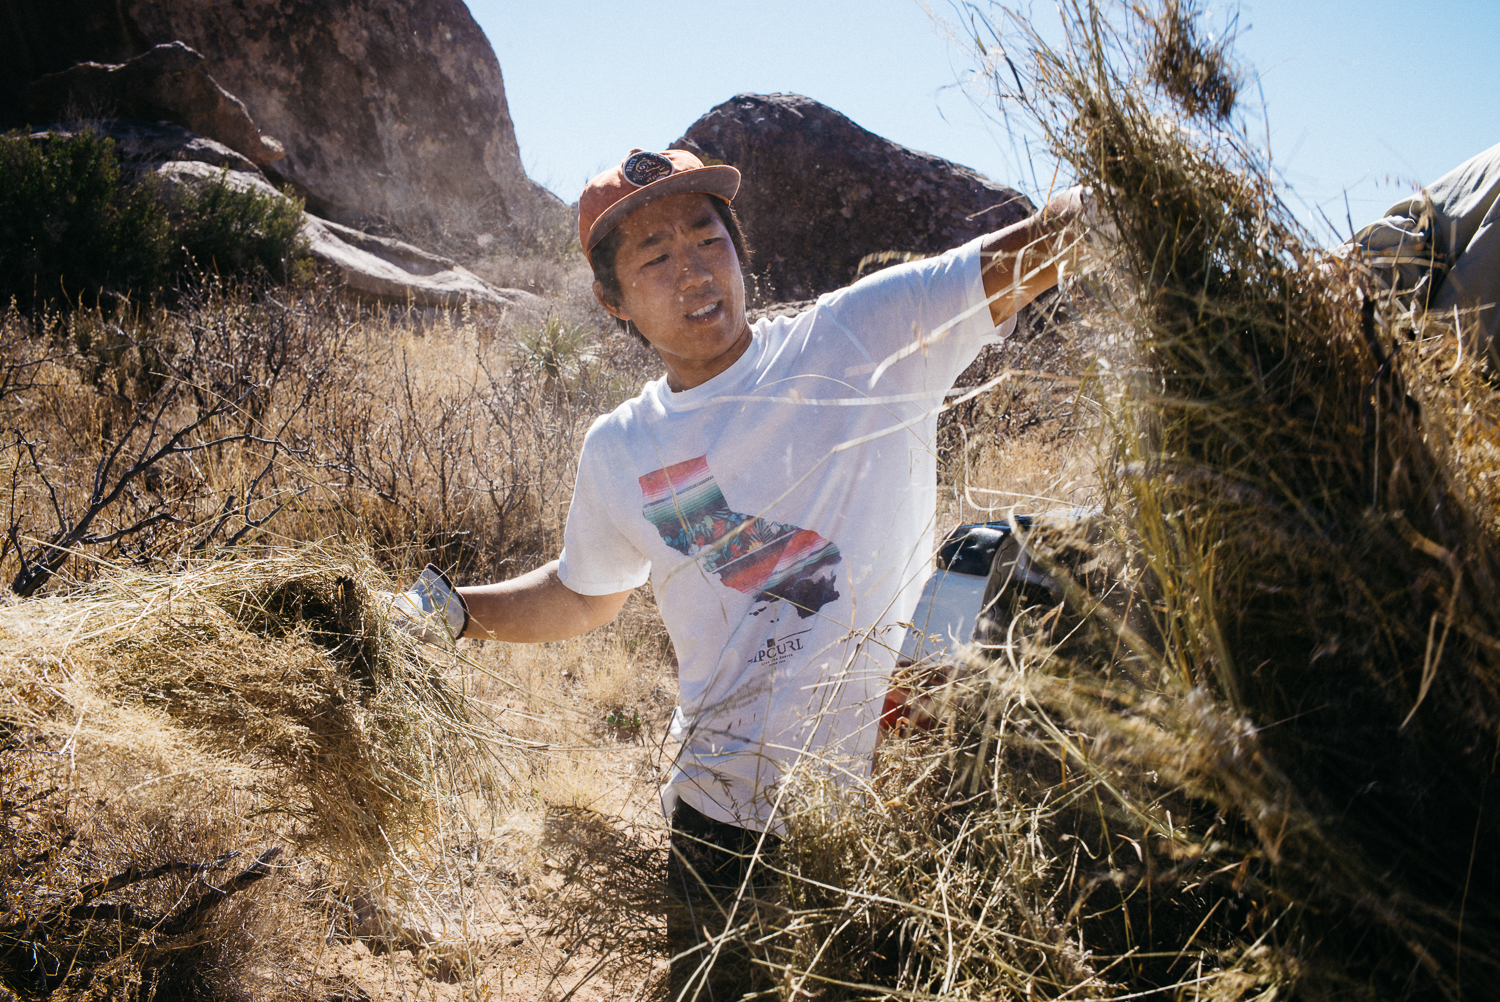 Ben Lim picking up hay as a volunteer with the Access Fundand placing it down after the gravel removal to help mitigate erosion. Michael Lim Photography 2015 ©